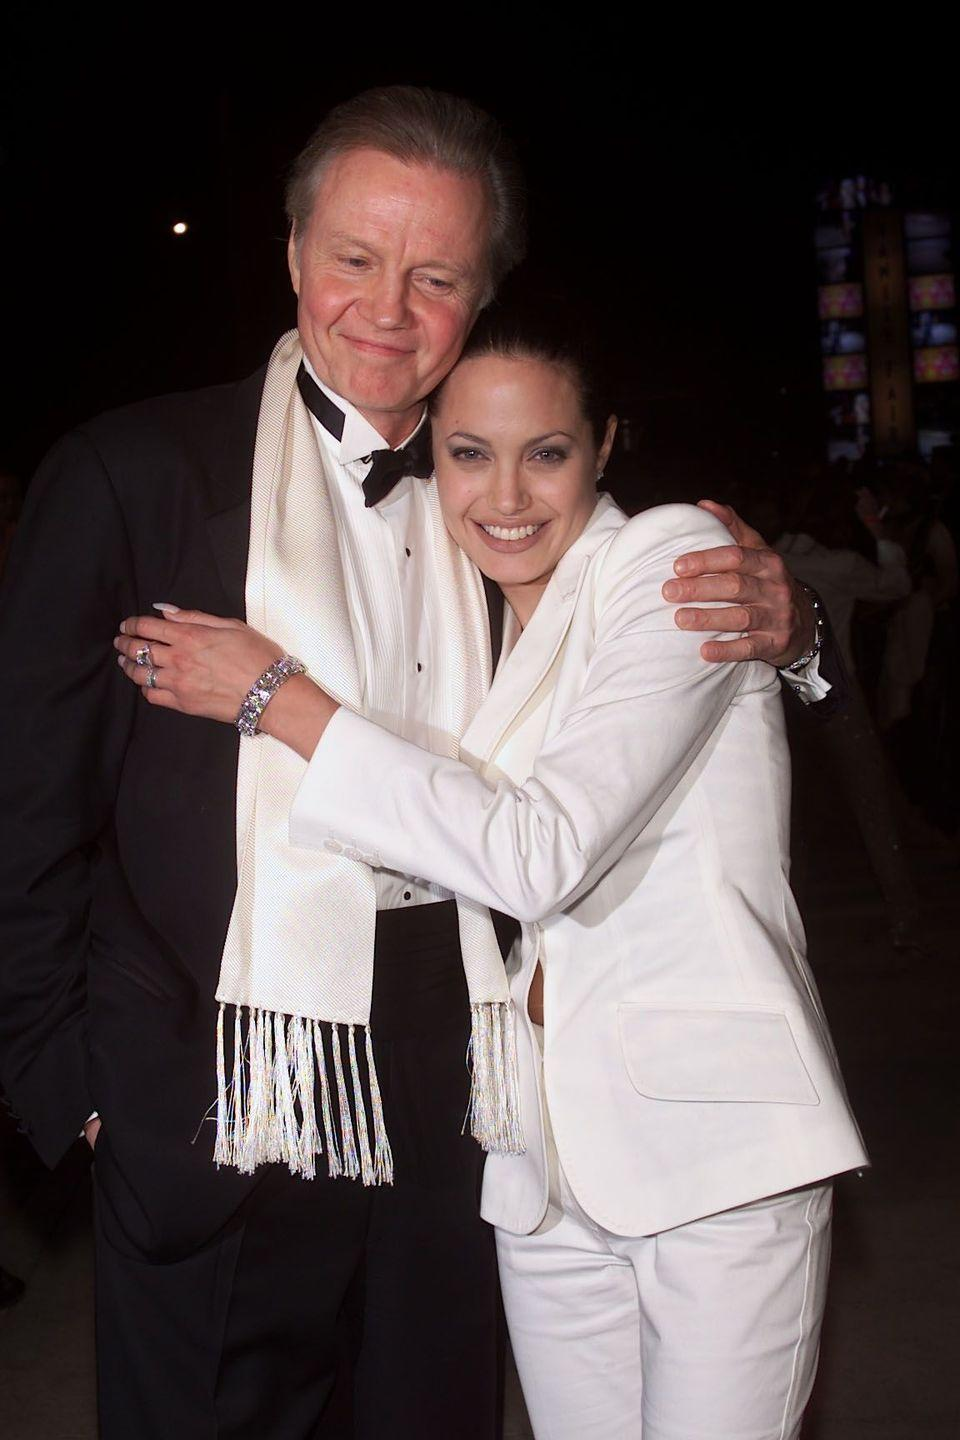 """<p><strong>Famous parent(s)</strong>: actor Jon Voigt<br><strong>What it was like</strong>: Angelina has been open about her tumultuous relationship with her father. """"My father and I don't speak,"""" she once <a href=""""http://www.dailymail.co.uk/tvshowbiz/article-4501036/Angelina-Jolie-bonds-Jon-Voight-family-dinner.html"""" rel=""""nofollow noopener"""" target=""""_blank"""" data-ylk=""""slk:said"""" class=""""link rapid-noclick-resp"""">said</a>. """"I don't believe that somebody's family becomes their blood. Because my son's adopted, and families are earned.""""</p>"""